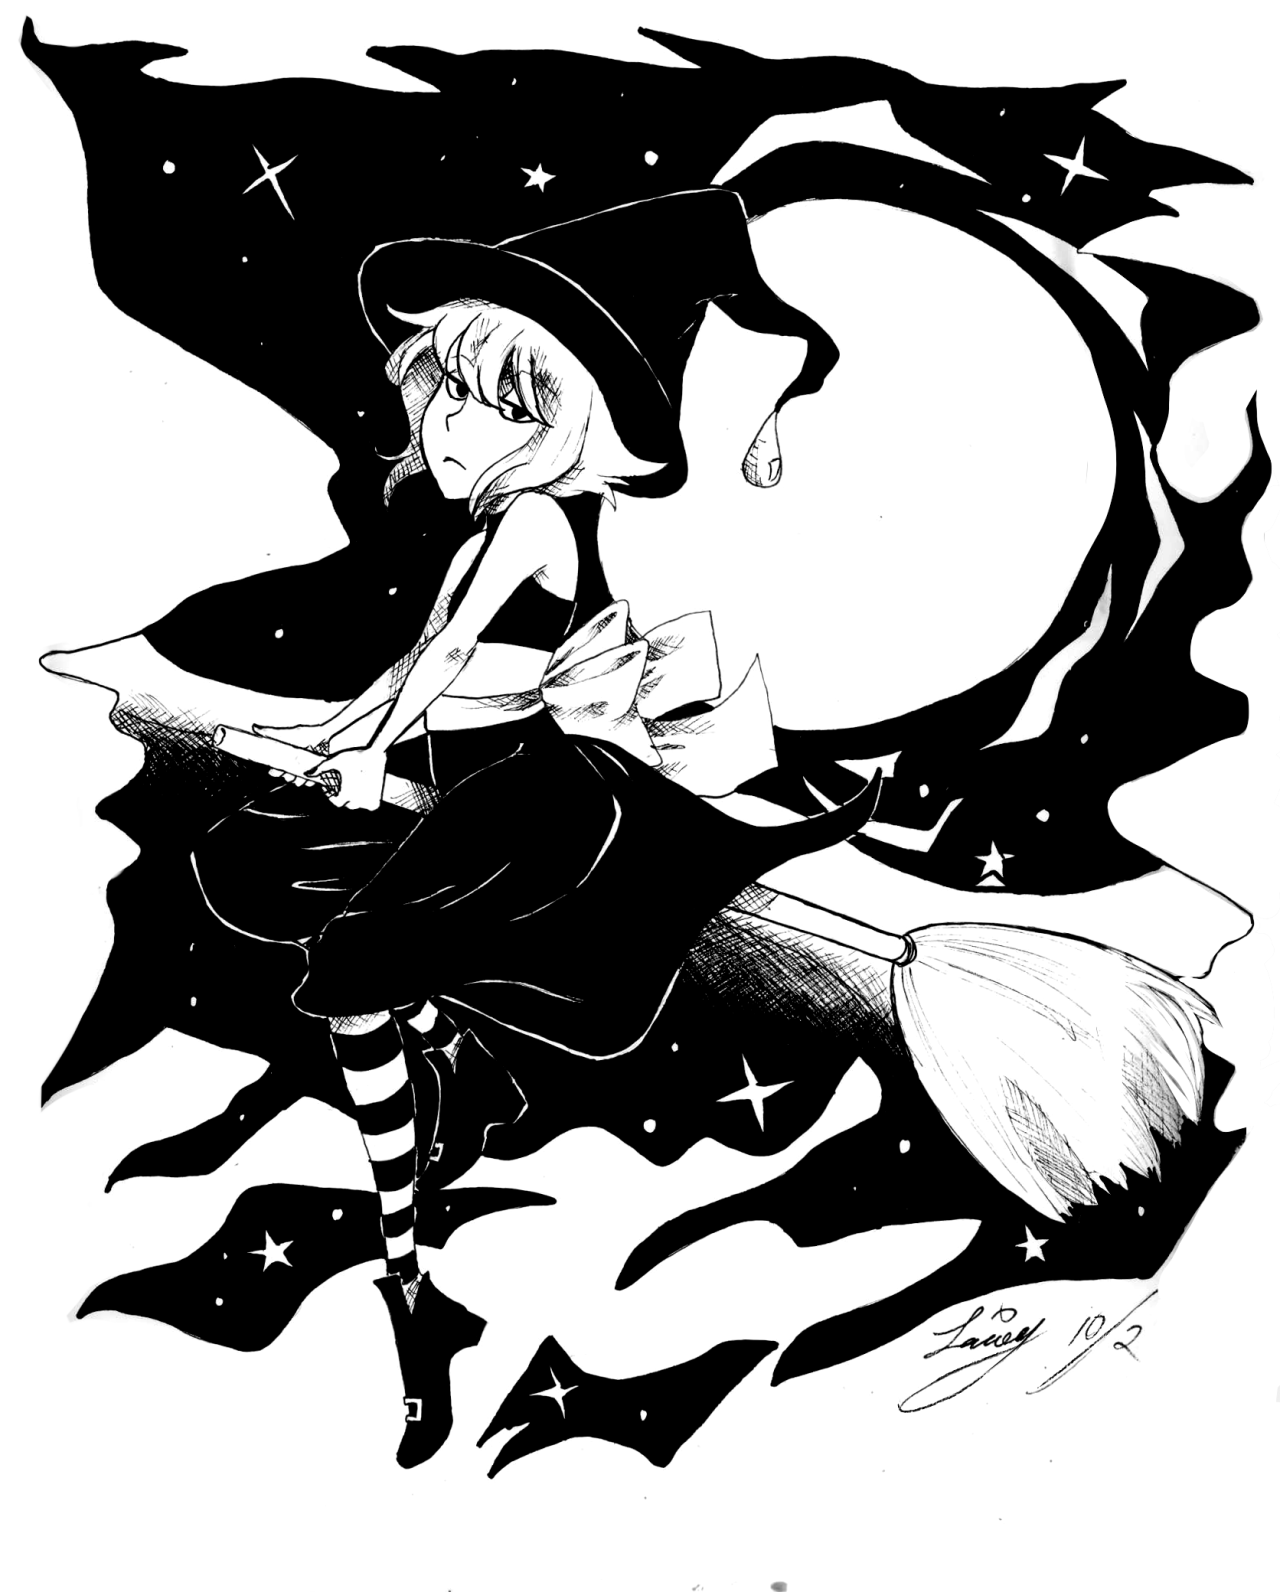 Inktober: Day 2I missed day one of inktober, so here's a witchy lappy for day 2.